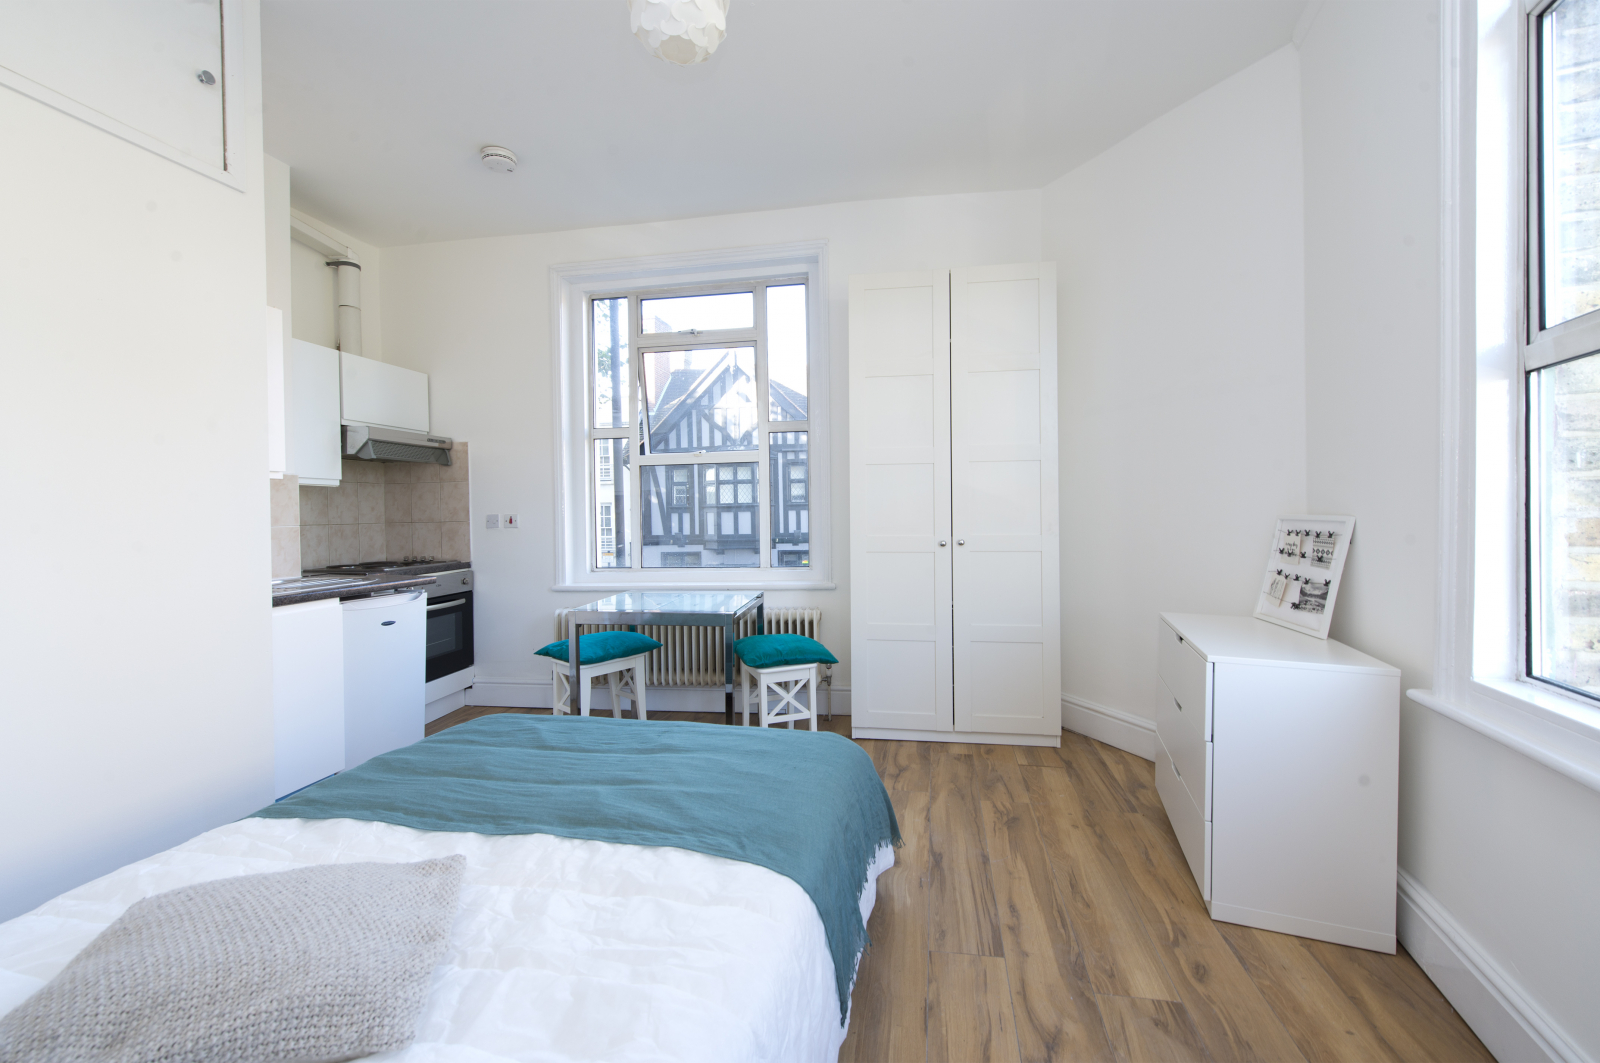 Studio flat to rent in Dalling road, Hammersmith, London 1